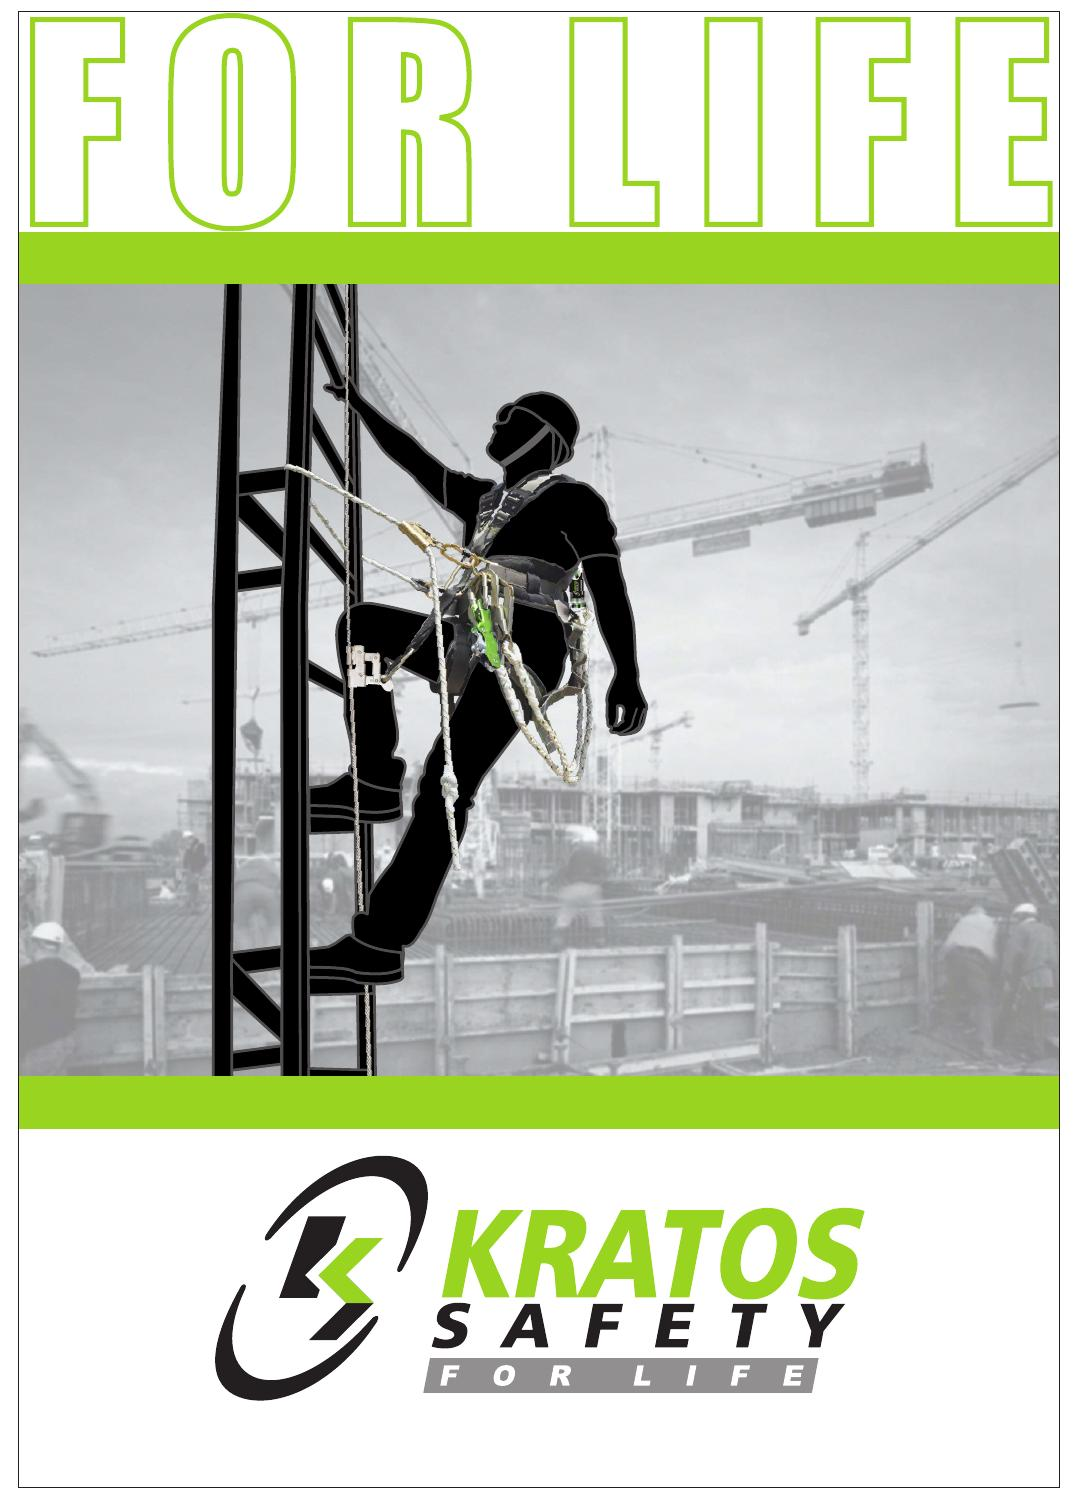 Kratos catalogue by imedia.ch - issuu